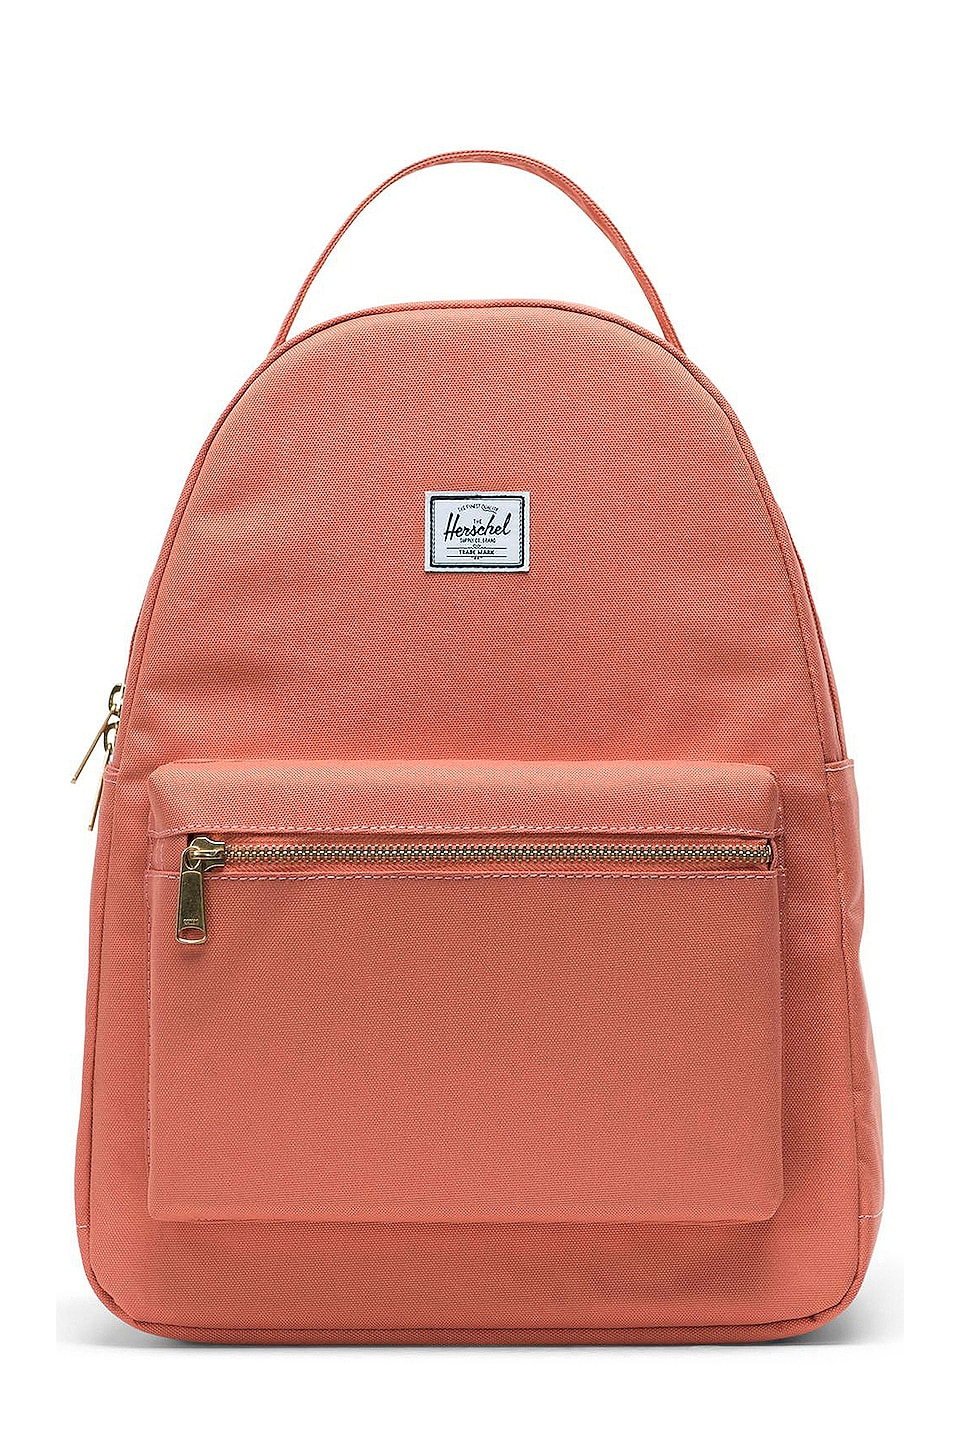 Herschel Supply Co. Nova Mid Volume Backpack in Apricot Brandy